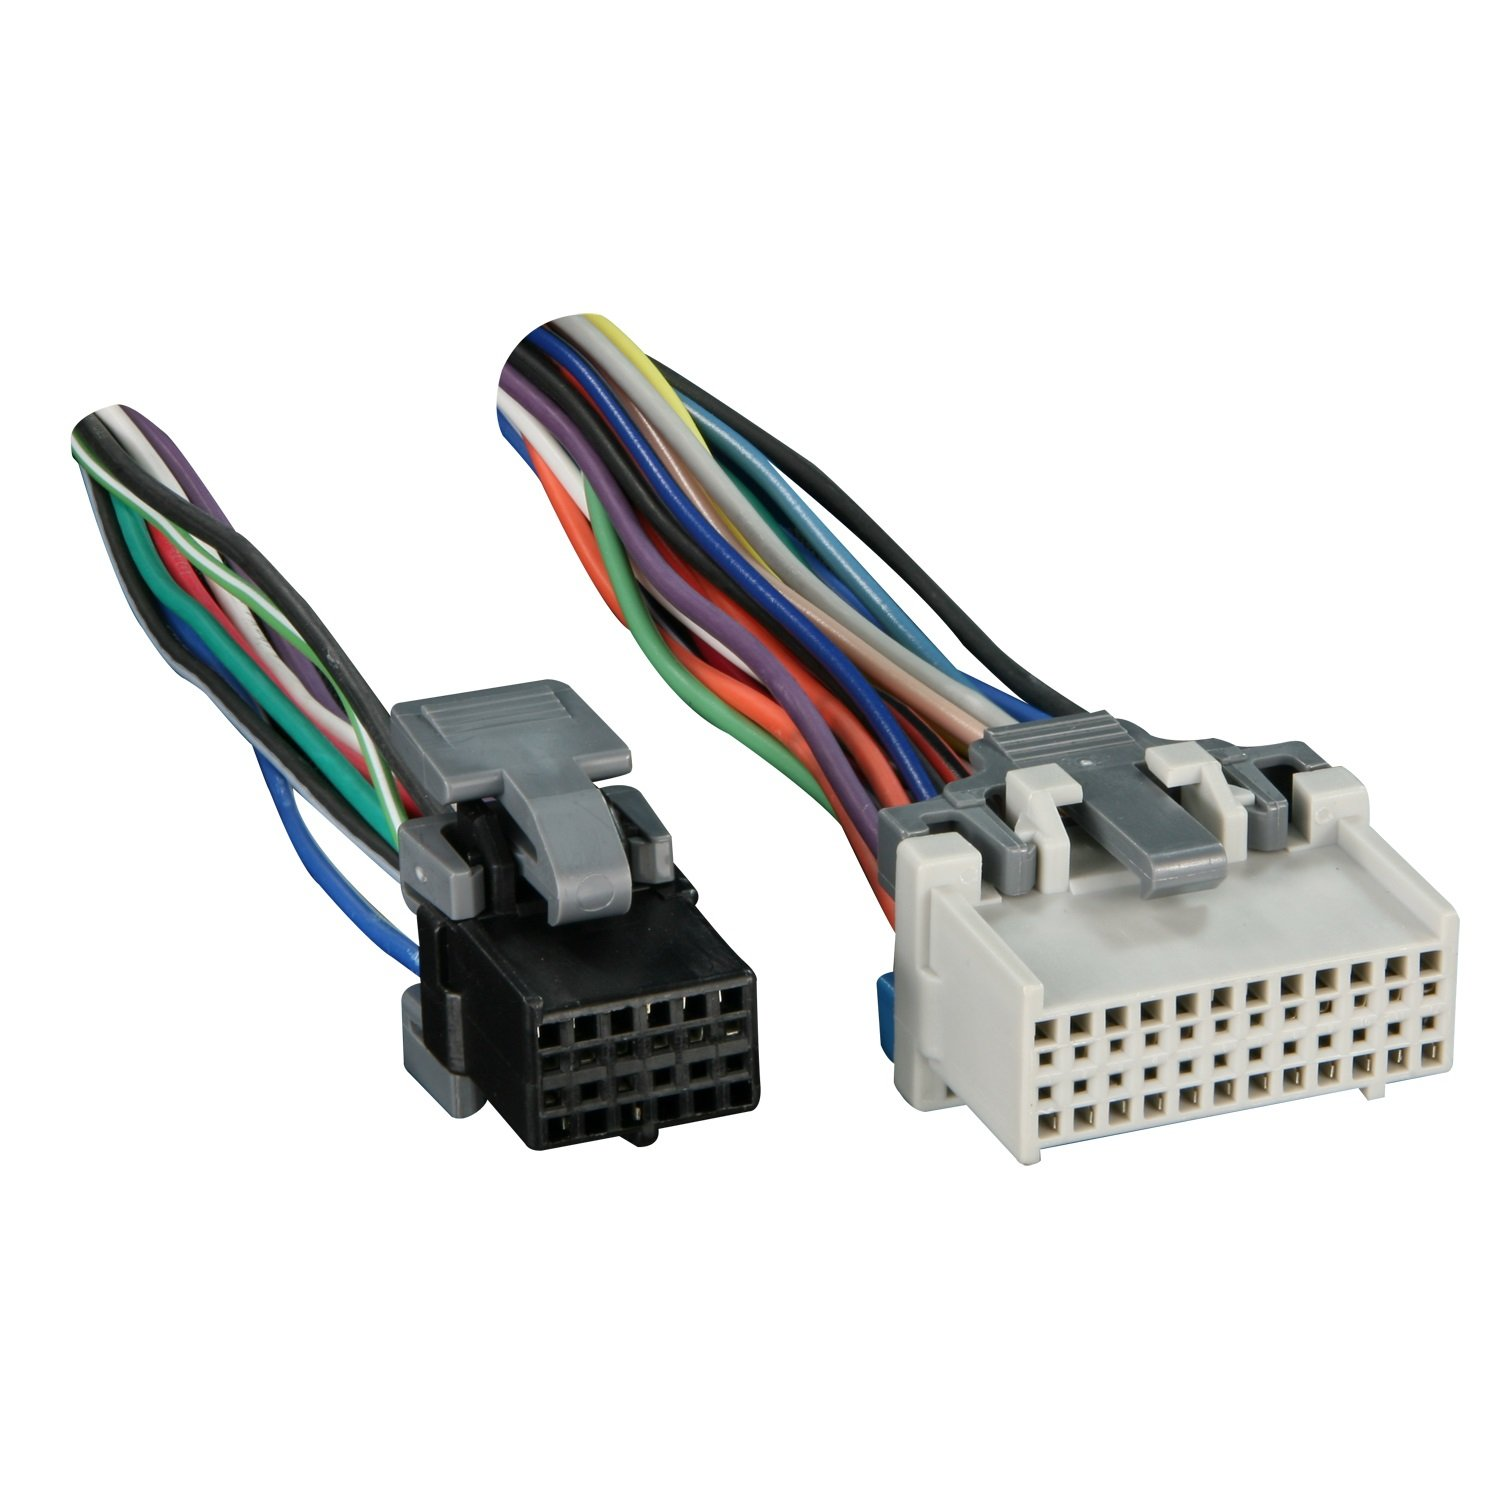 711log4bdML._SL1500_ amazon com metra turbowires 71 2003 1 wiring harness car electronics how much does it cost to replace a wiring harness at bakdesigns.co